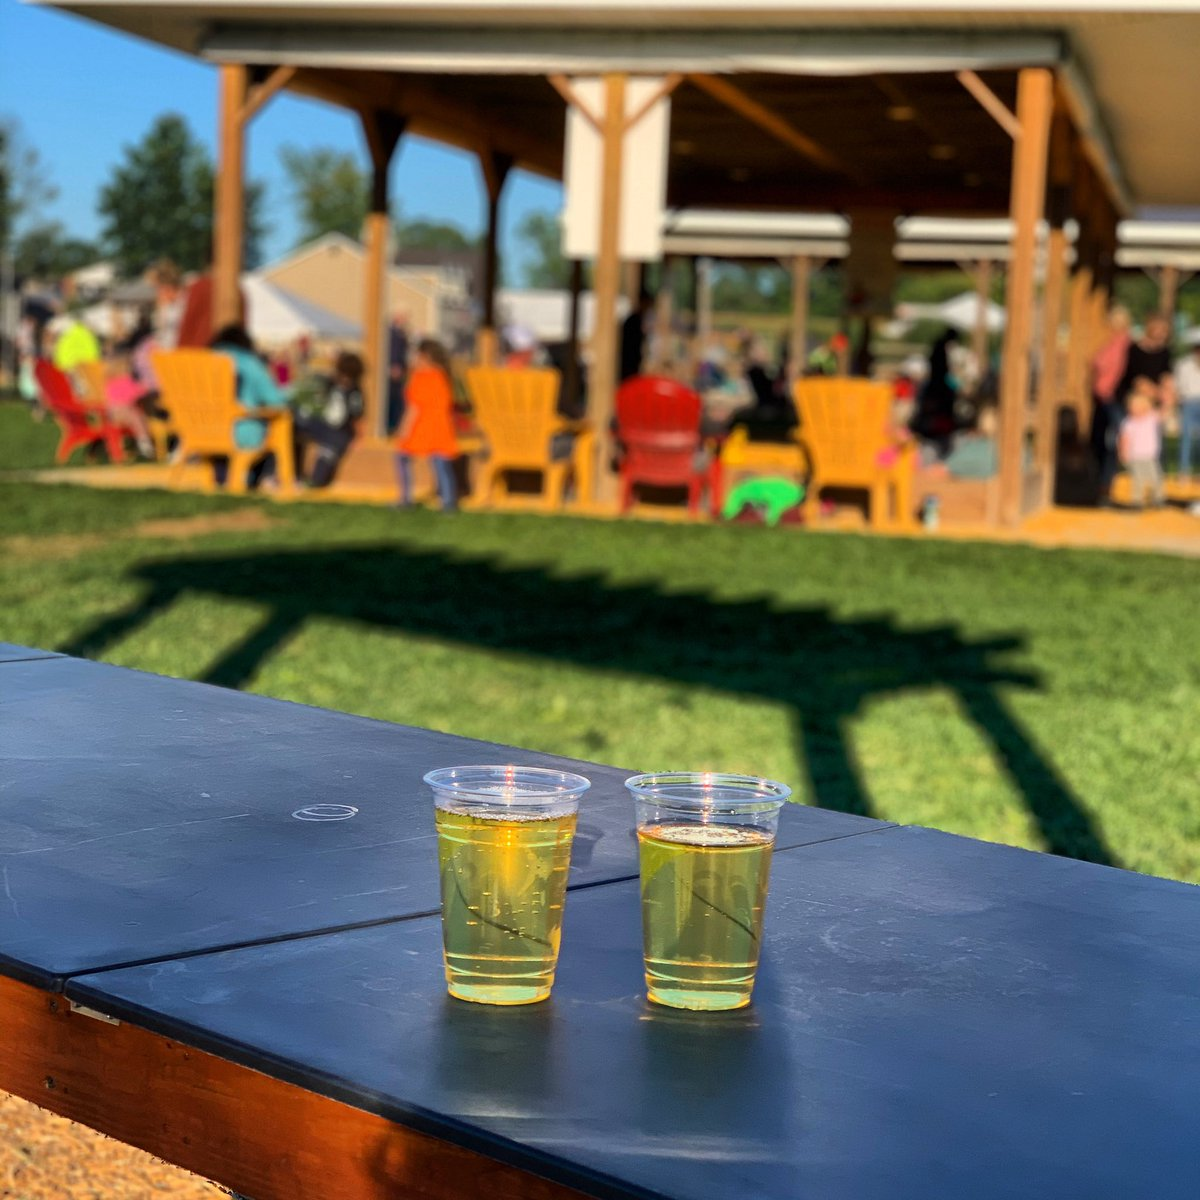 CIDER.... yes now you can enjoy a cider at The Cider Mill while the kids have some fall fun🍂 #fallfun #familytime #familyfun #cider #locallymade #outdooractivities